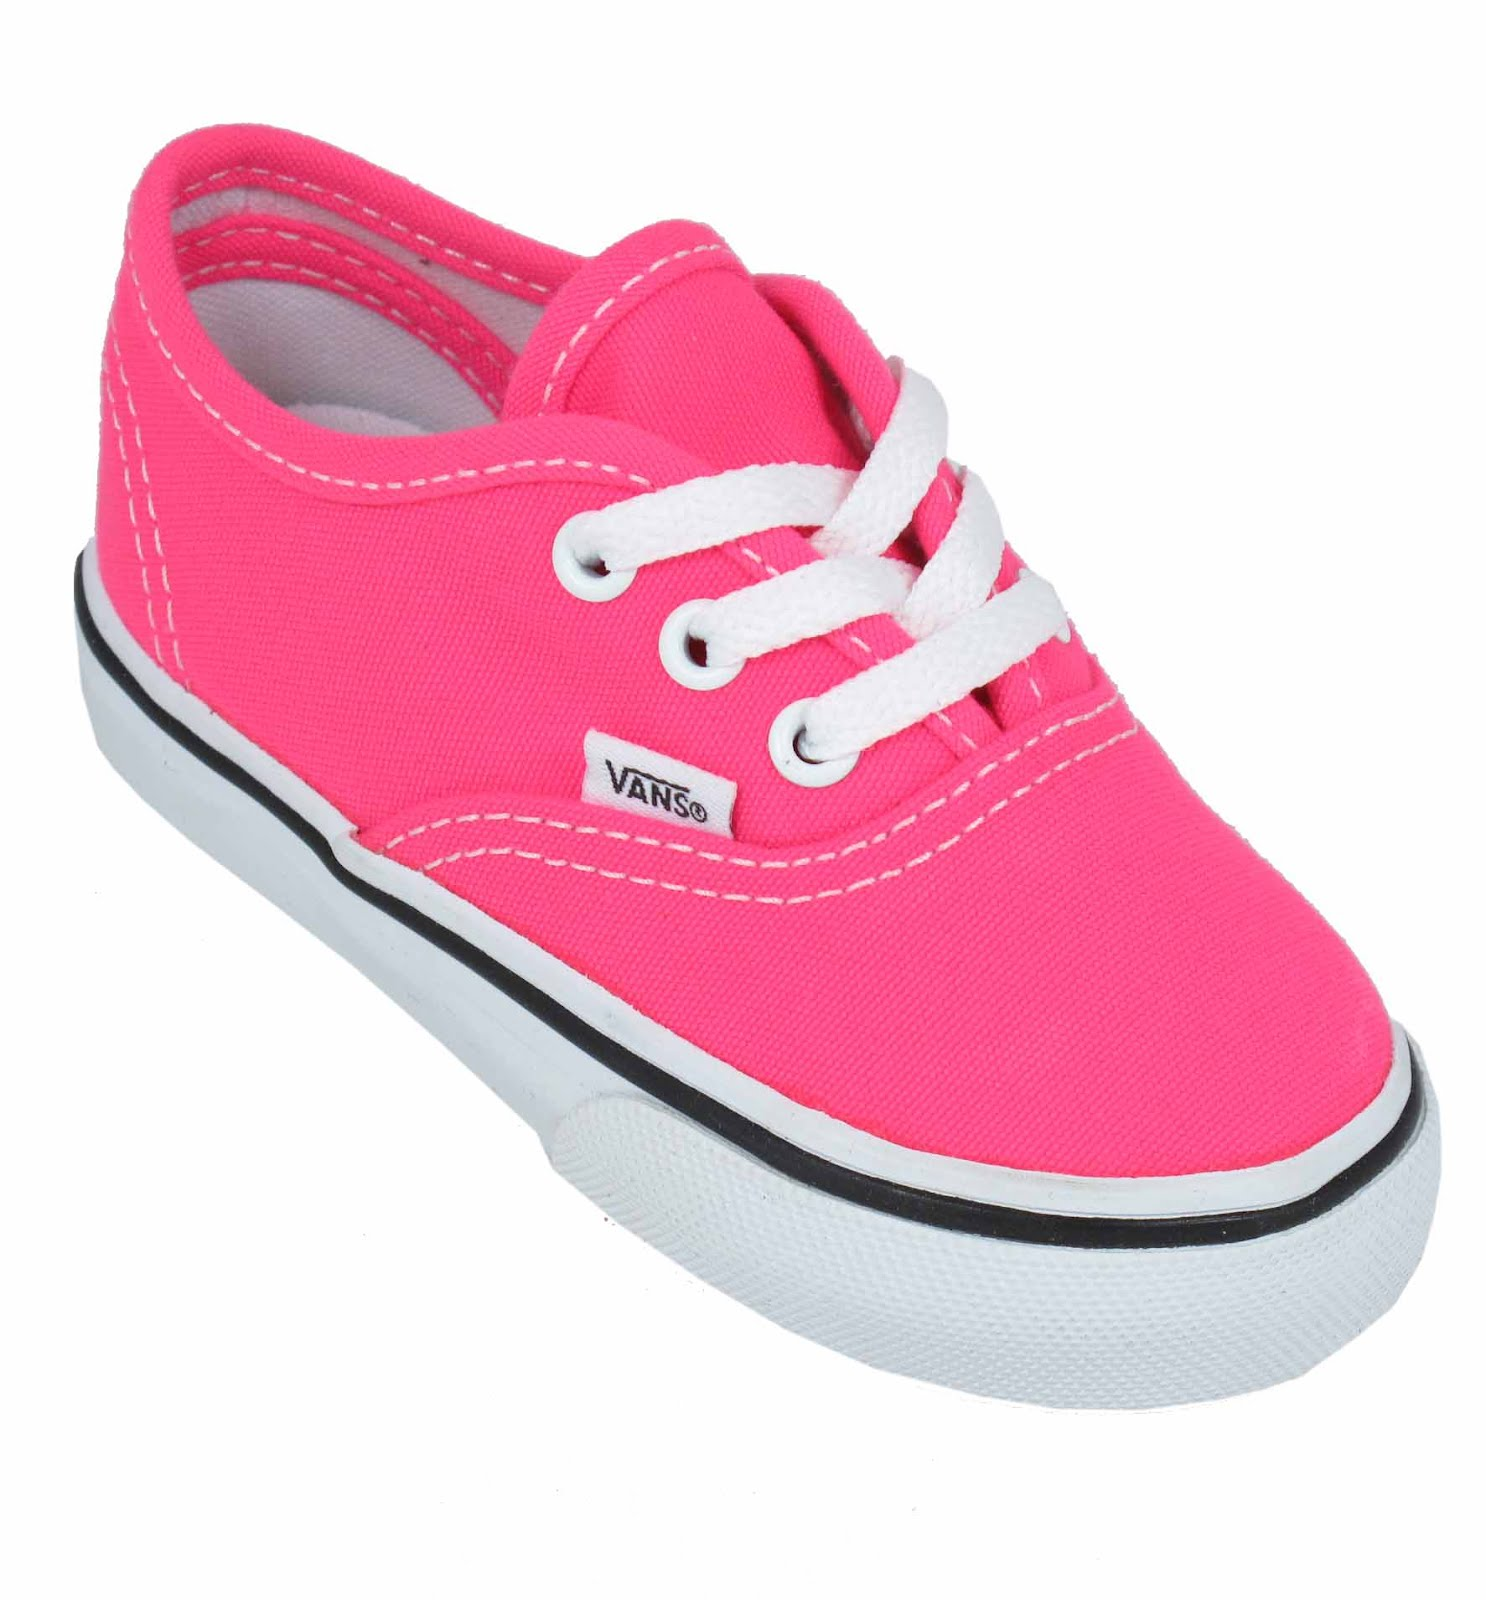 Landau Online: Vans Kids Shoes New Colours!